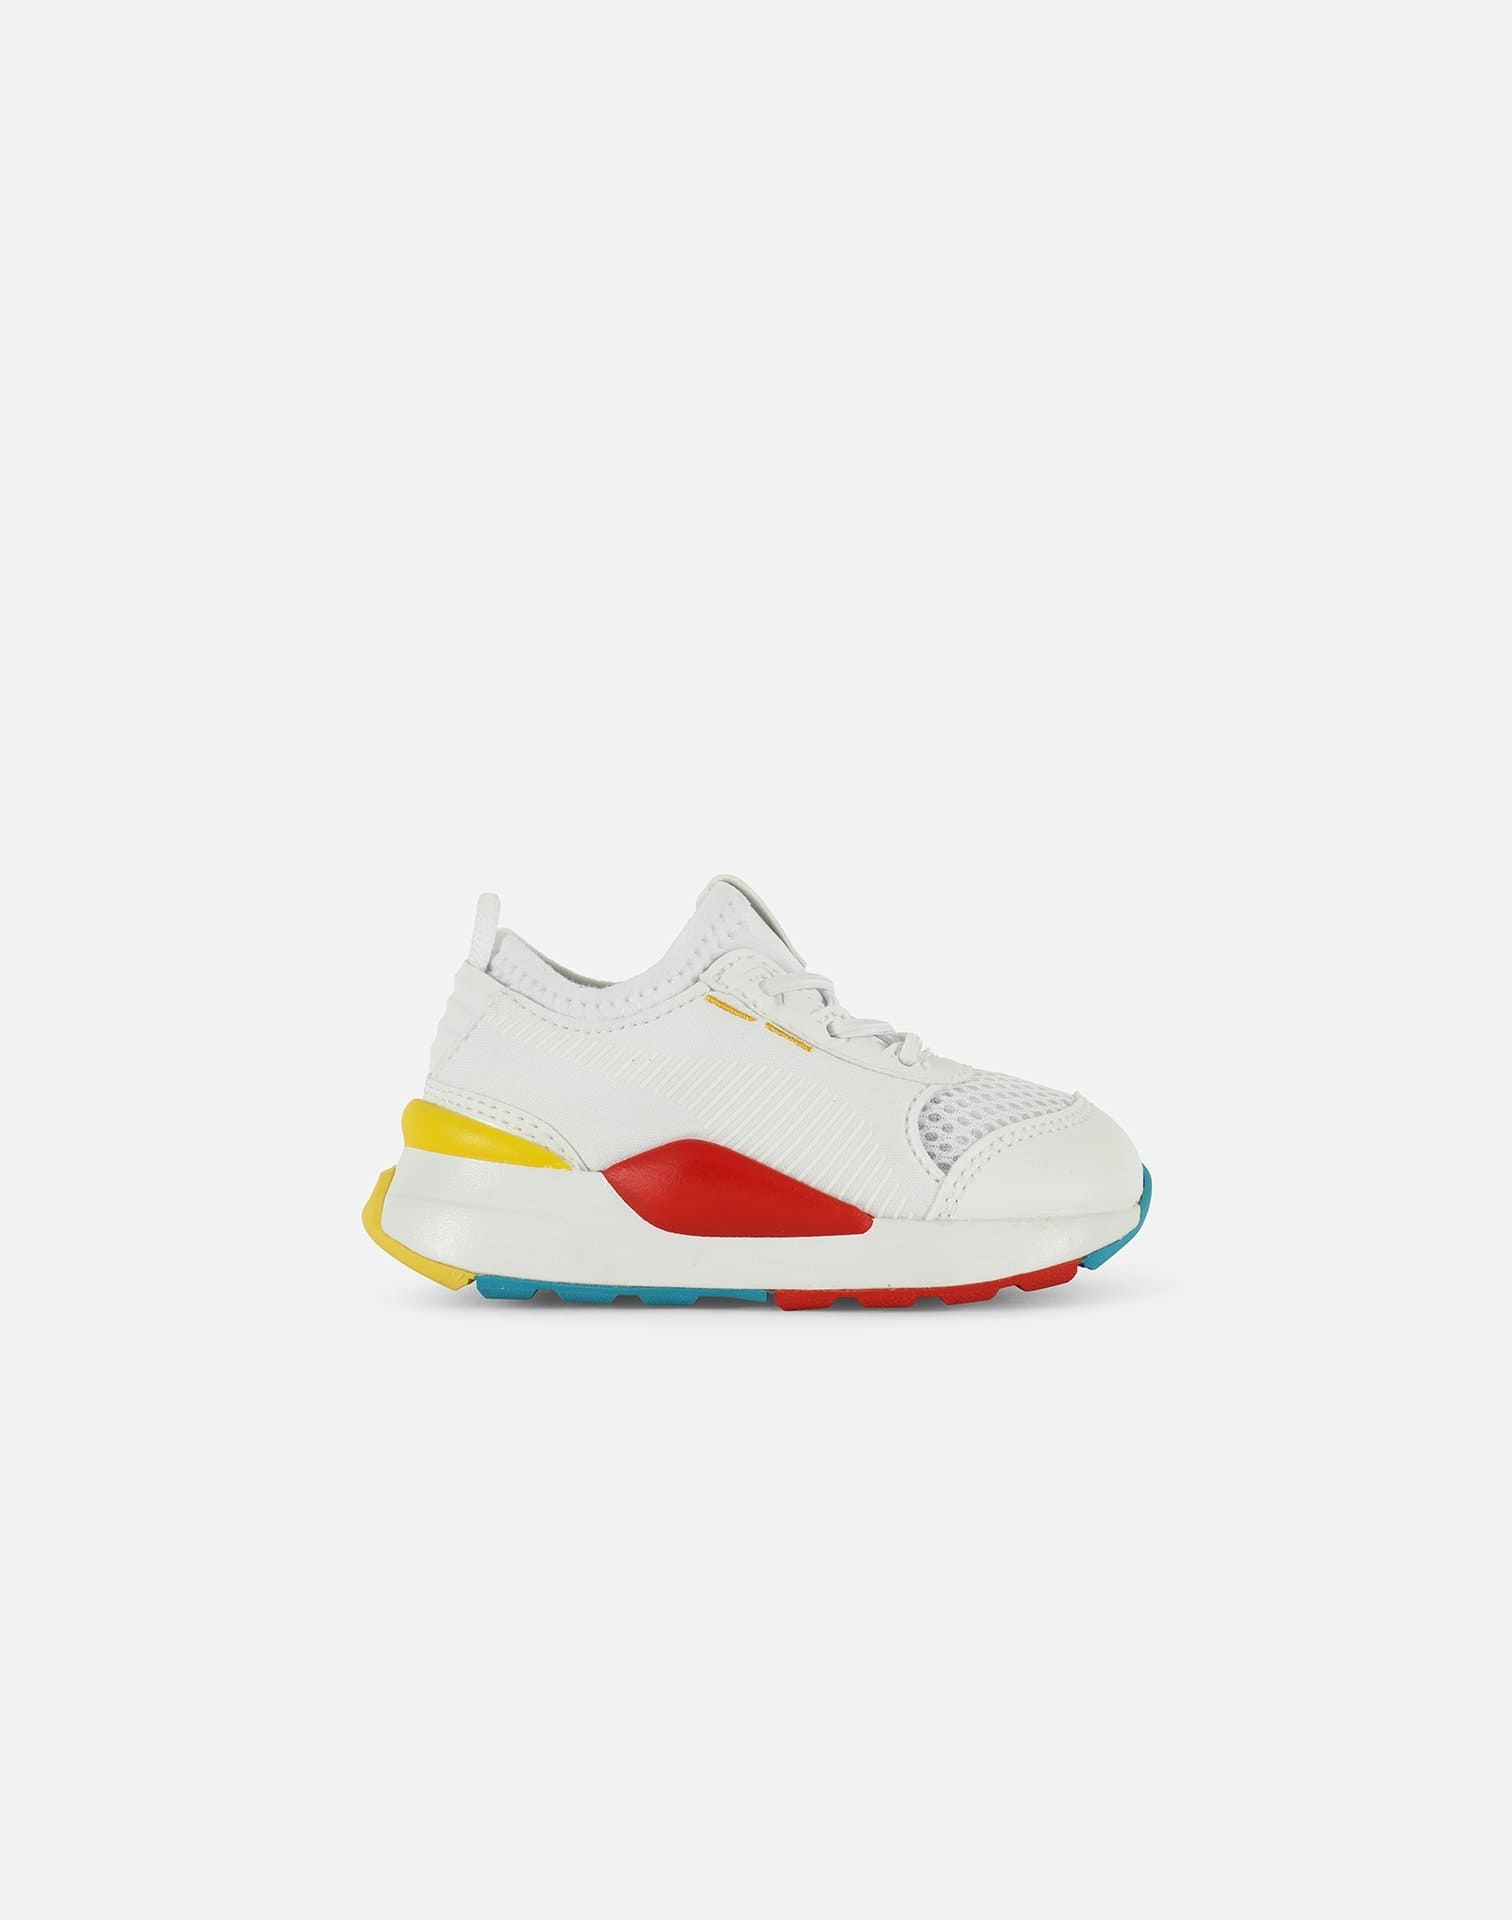 PUMA RS-0 'Play' Infant